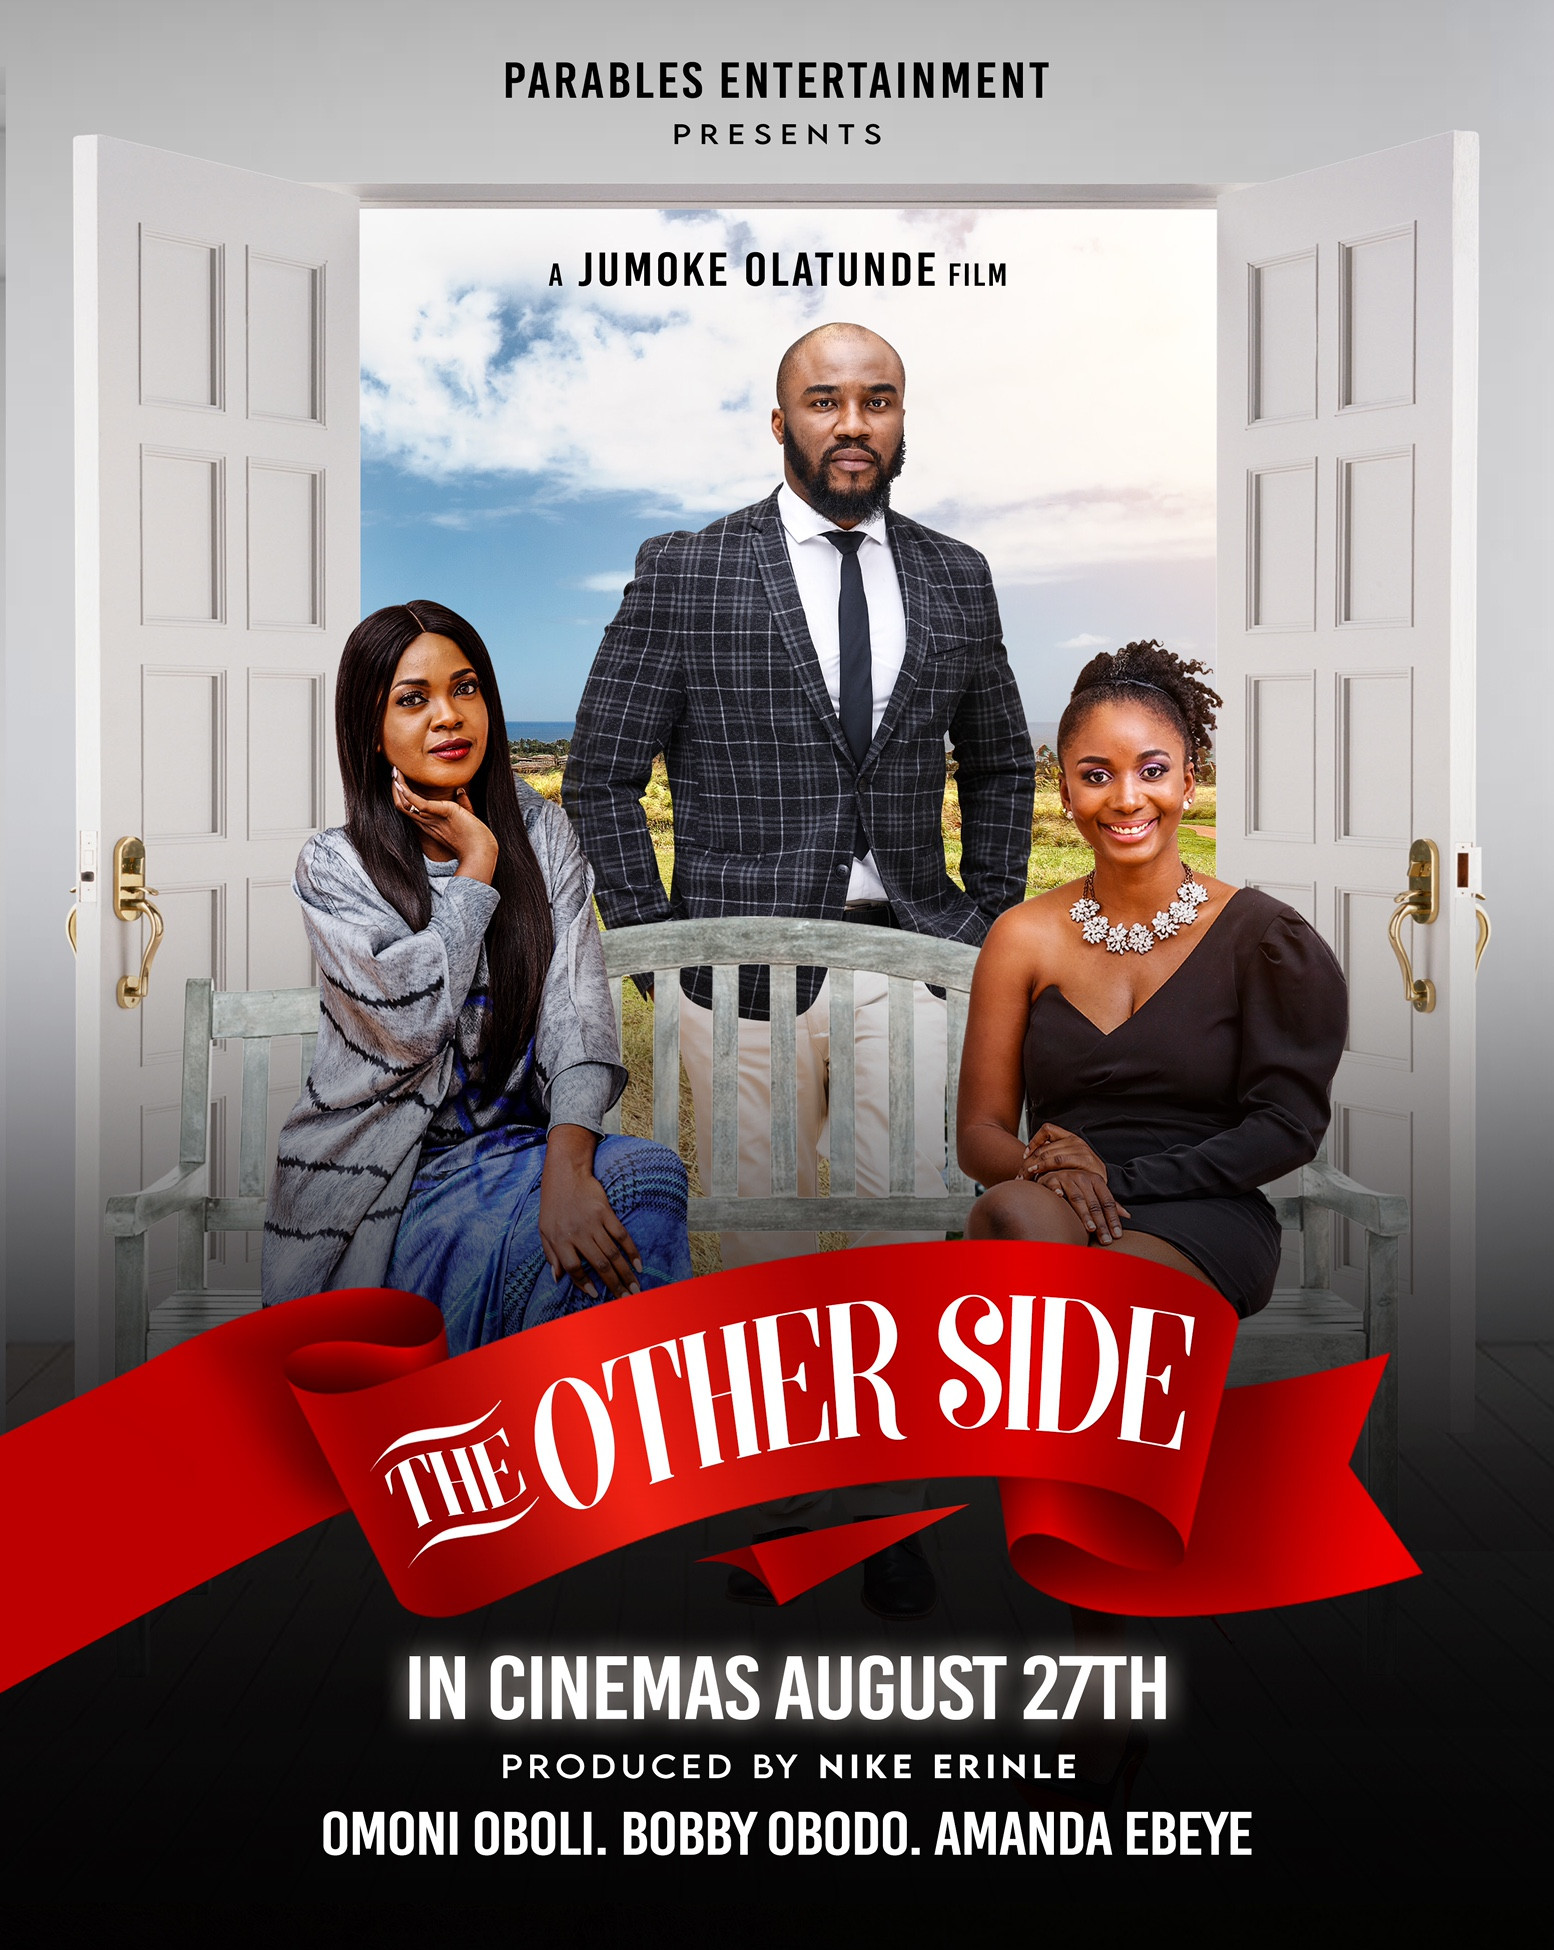 the other side trailer